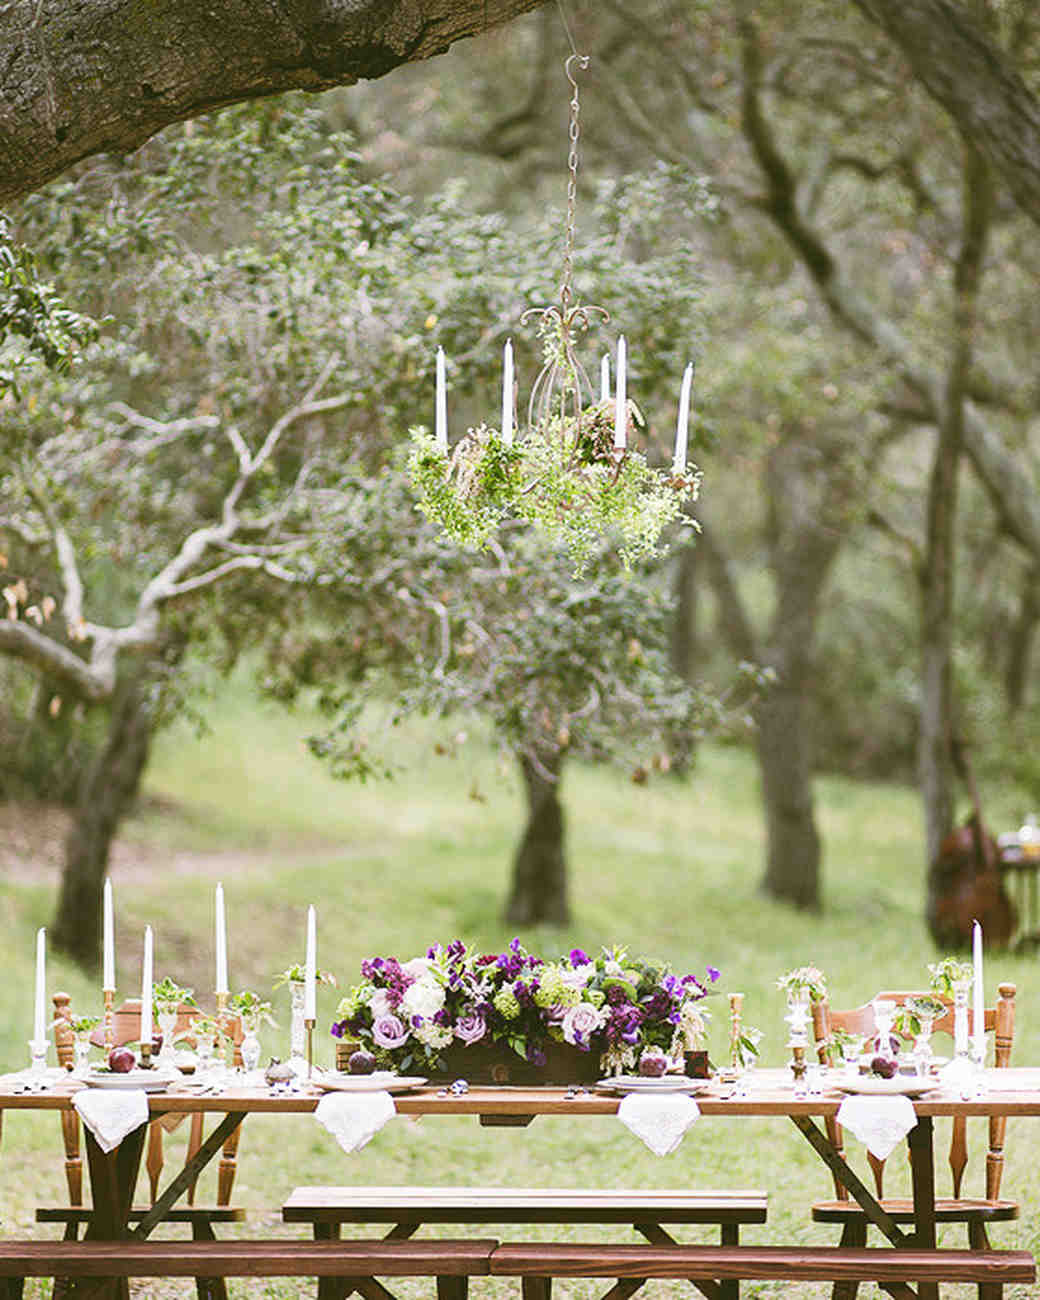 Garden Wedding Tips For A Beautiful Wedding: 13 Dreamy Garden Wedding Ideas